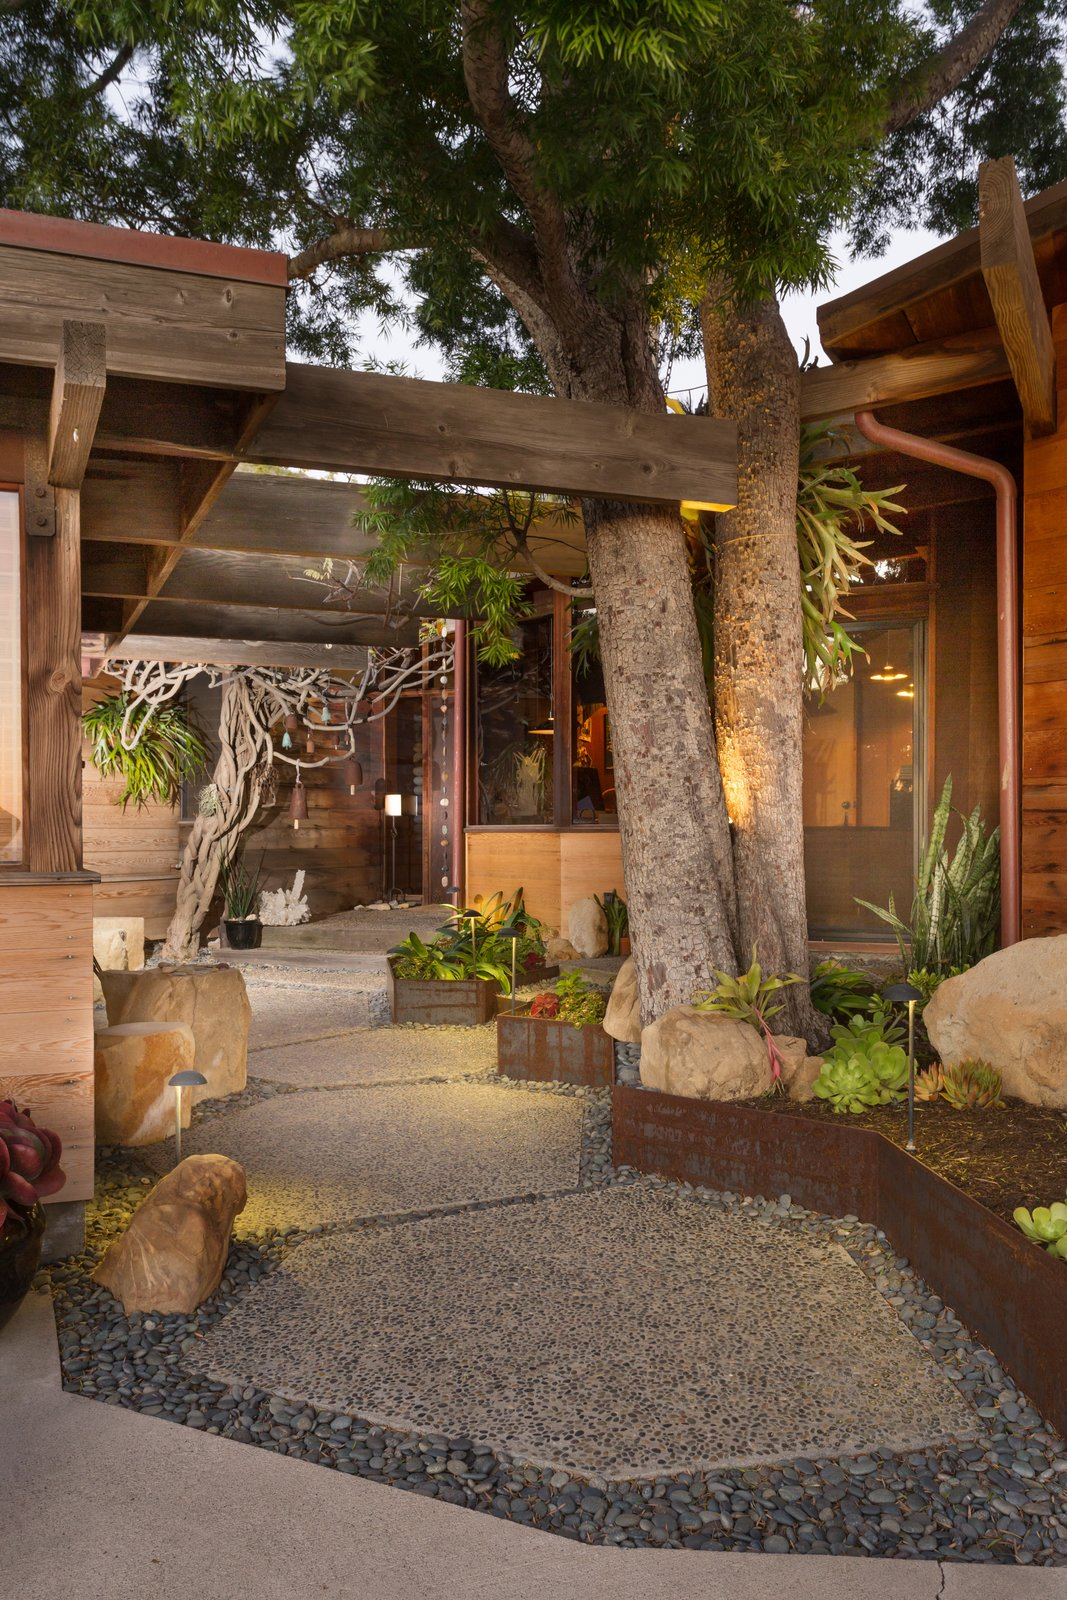 Outdoor, Walkways, Hardscapes, Garden, Stone Patio, Porch, Deck, and Flowers  Photo 8 of 13 in A 1974 Masterpiece Is Put on the Market by a Family Friend of the Late Julius Shulman